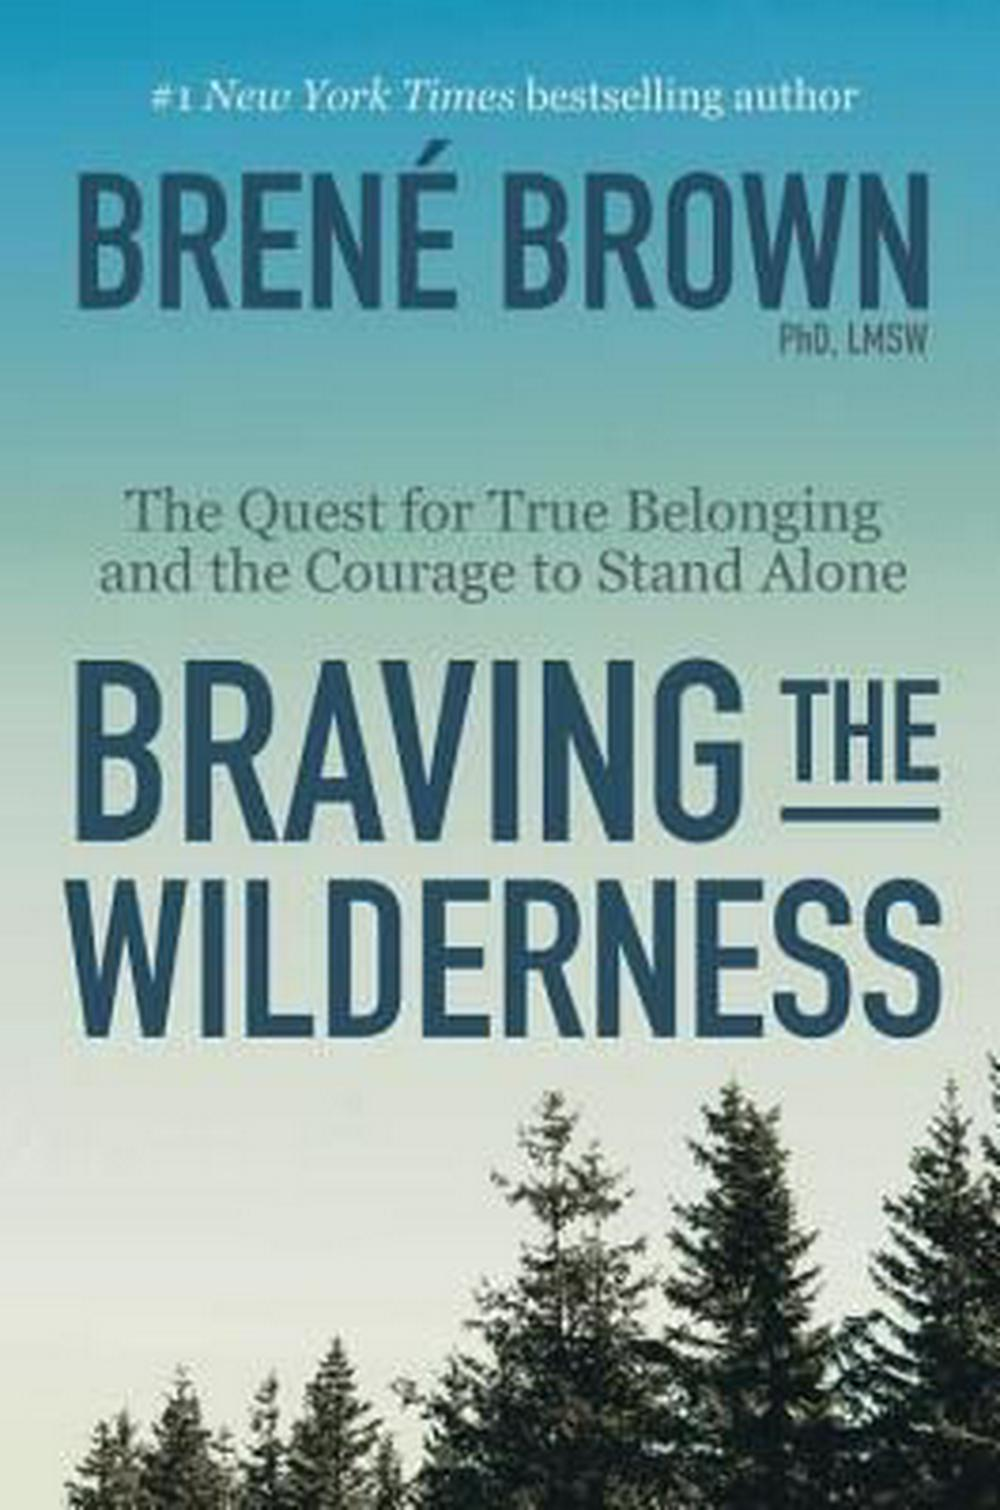 Braving the WildernessThe Quest for True Belonging and the Courage to... by PhD Lmsw Brene Brown, ISBN: 9780812995848